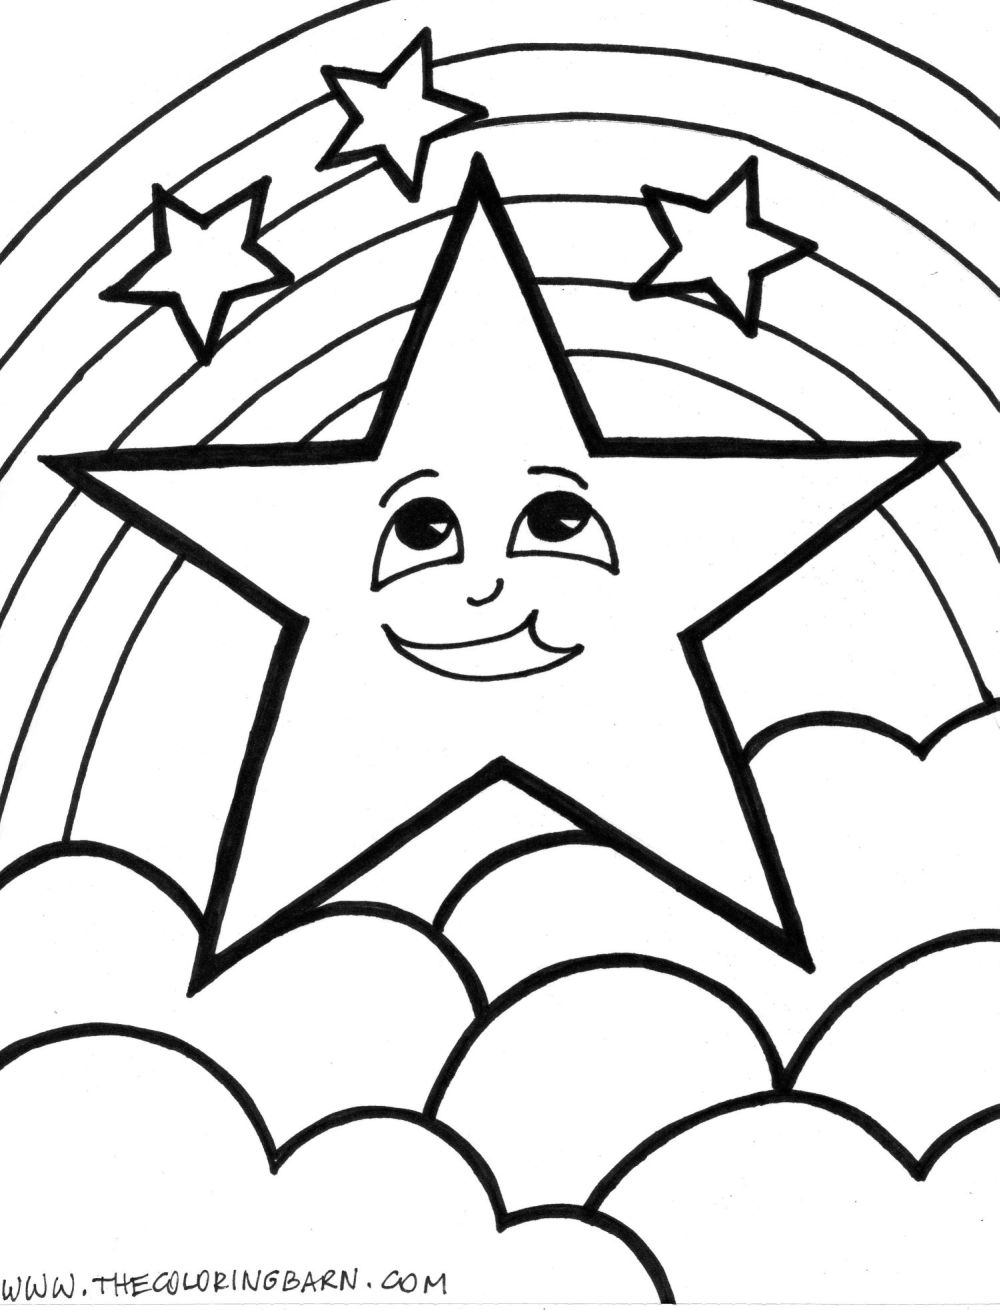 Christmas Coloring Pages For 3 Year Olds With Star Fresh Of A Stars Page 11 Jovie Co